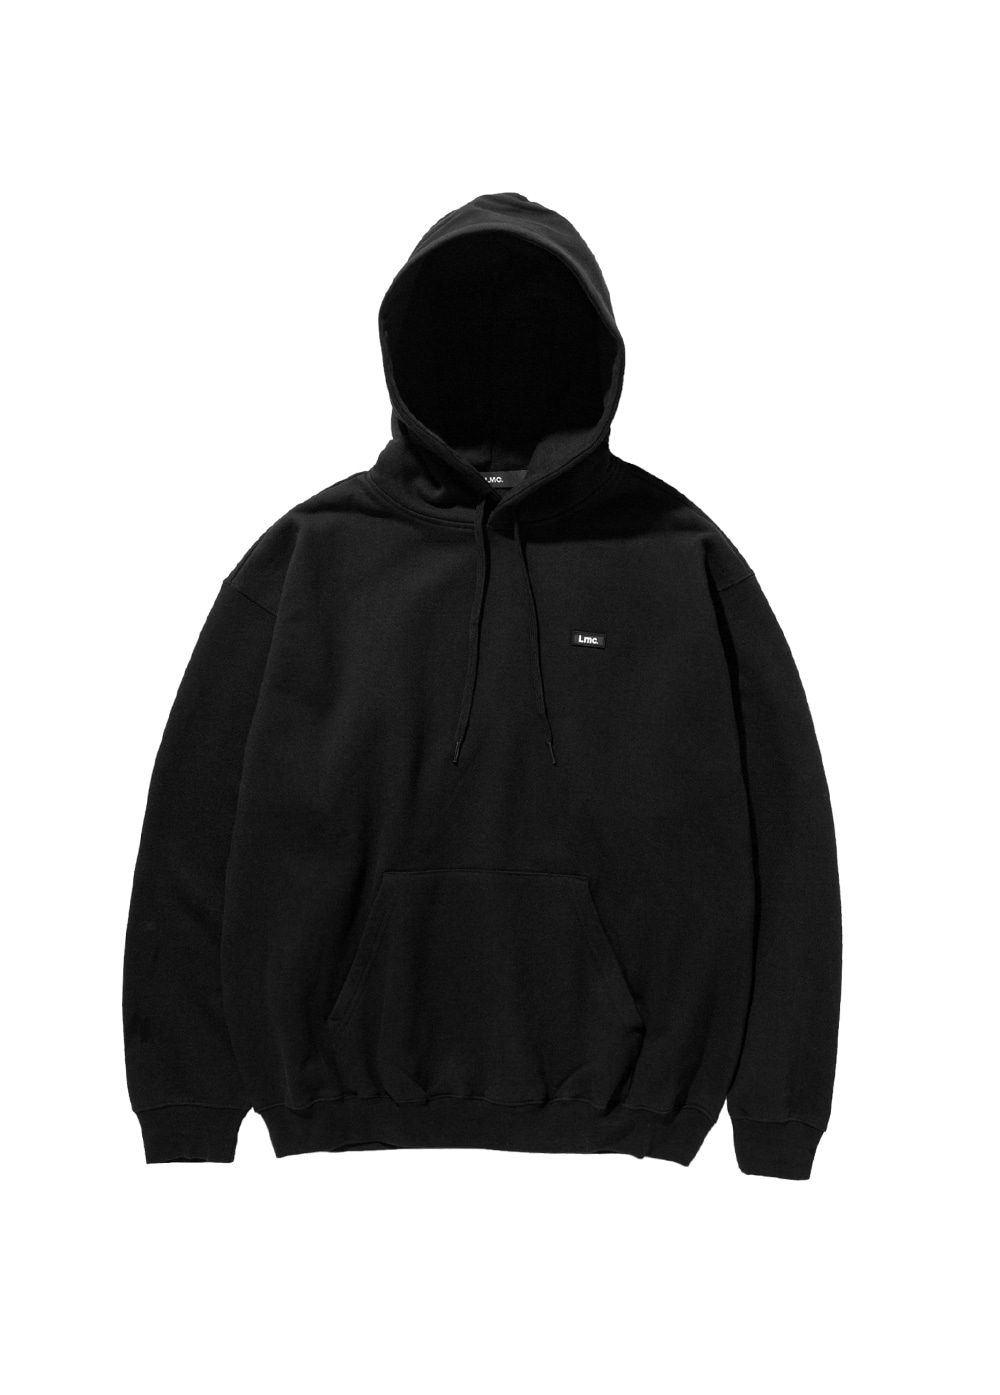 LMC RUBBER PATCH OVERSIZED HOODIE black